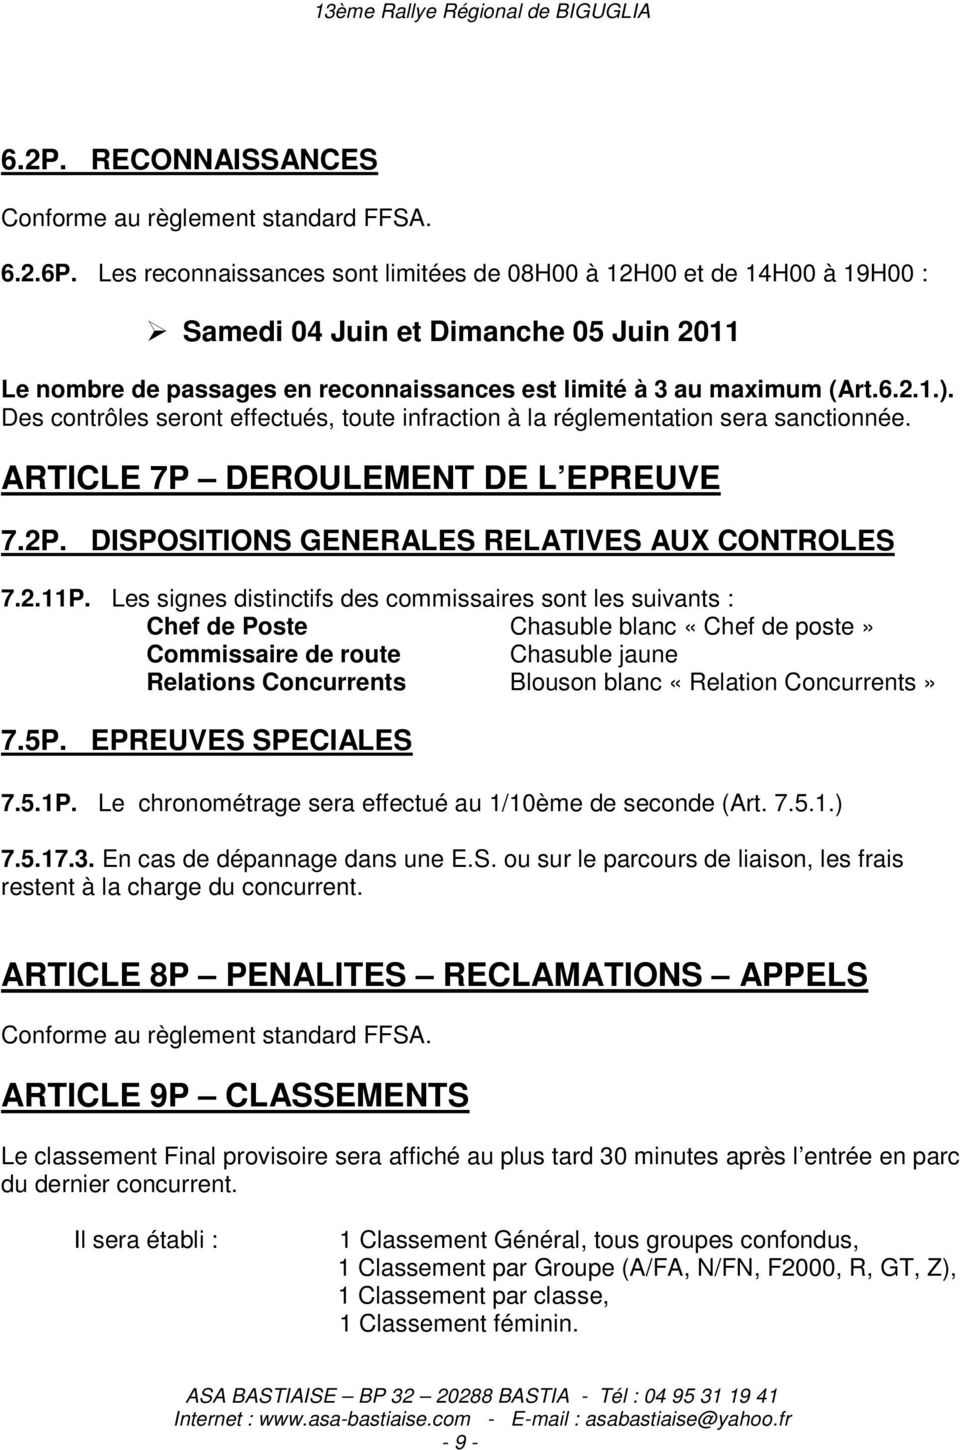 Des contrôles seront effectués, toute infraction à la réglementation sera sanctionnée. ARTICLE 7P DEROULEMENT DE L EPREUVE 7.2P. DISPOSITIONS GENERALES RELATIVES AUX CONTROLES 7.2.11P.